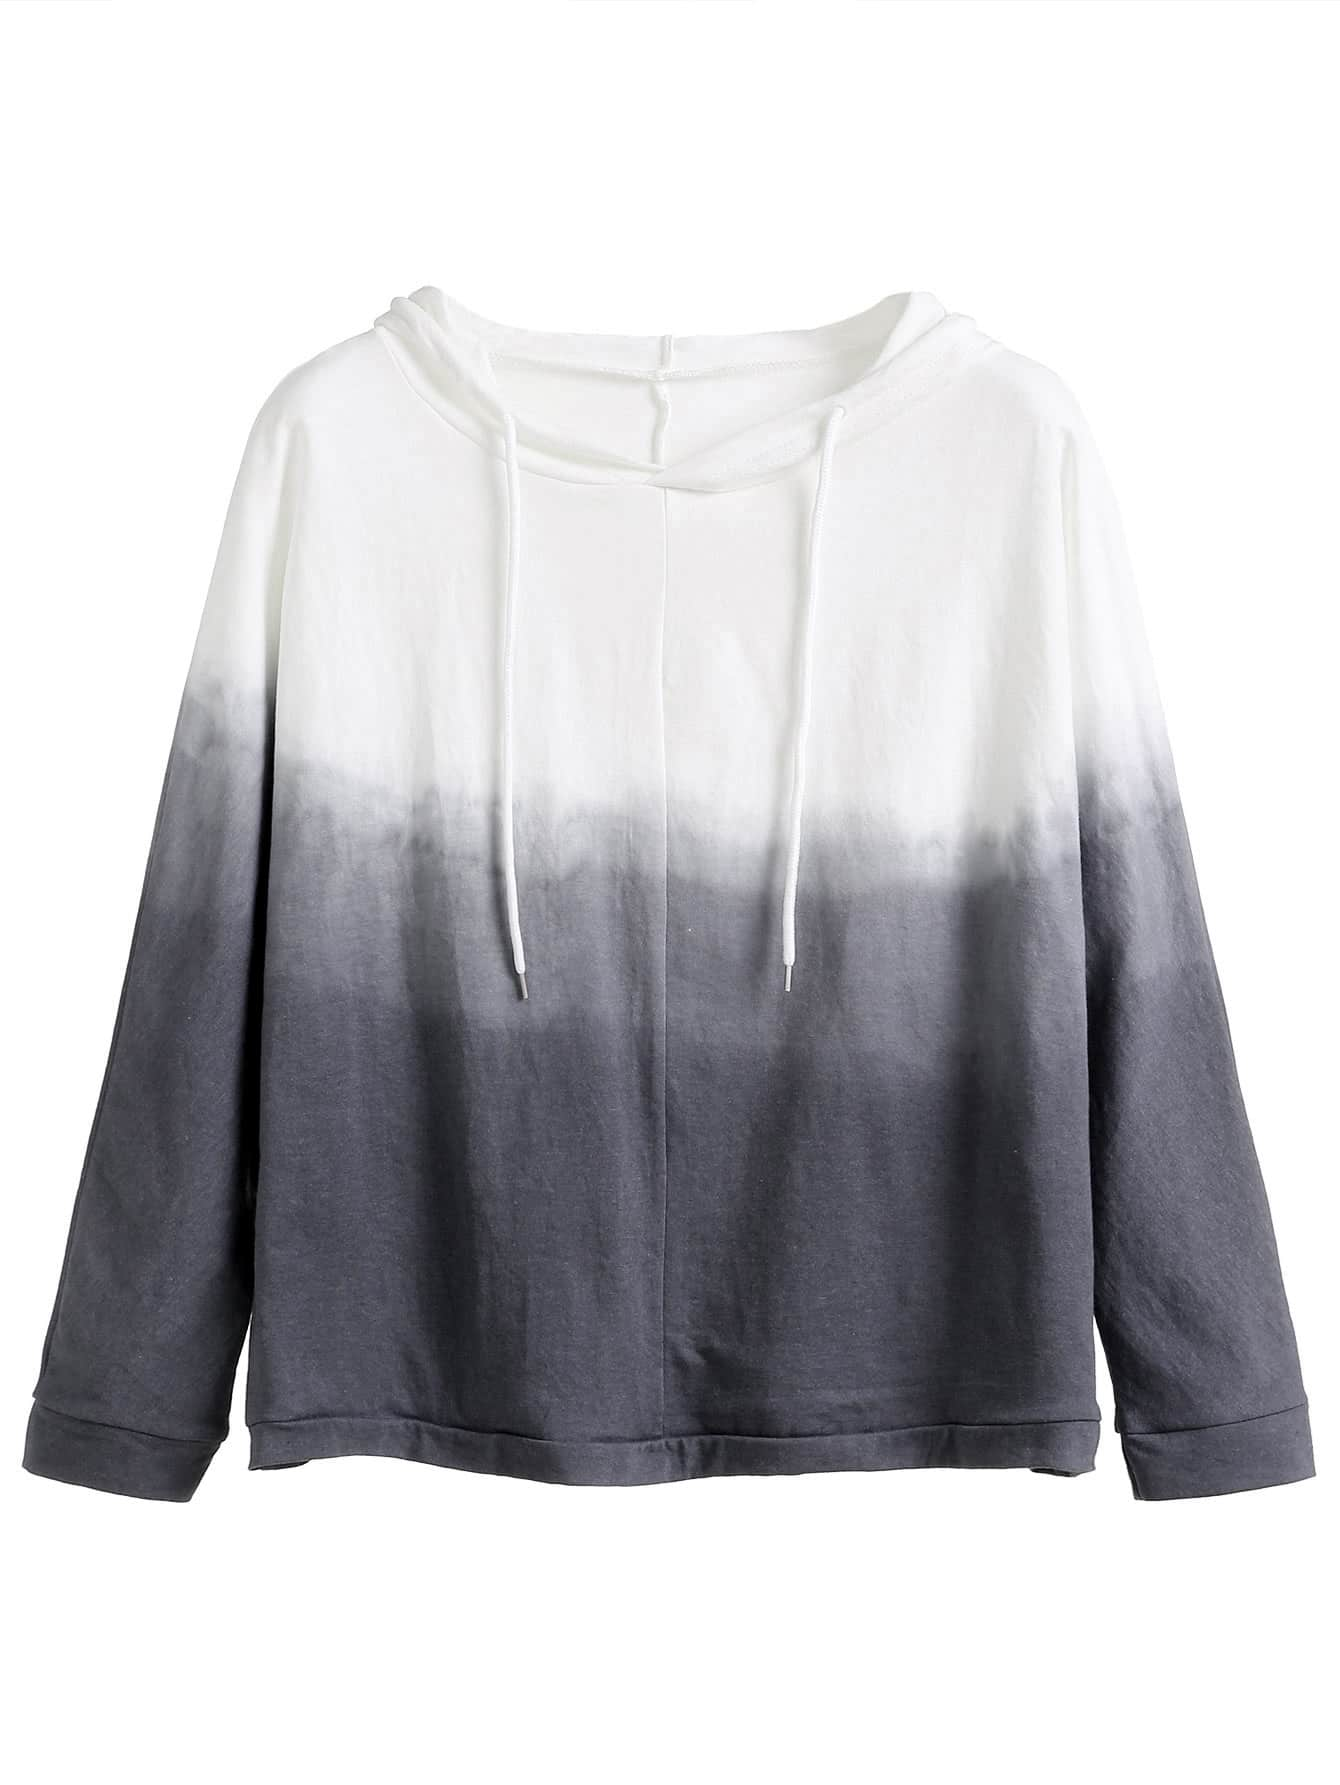 Grey Ombre Hooded Sweatshirt sweatshirt160830024